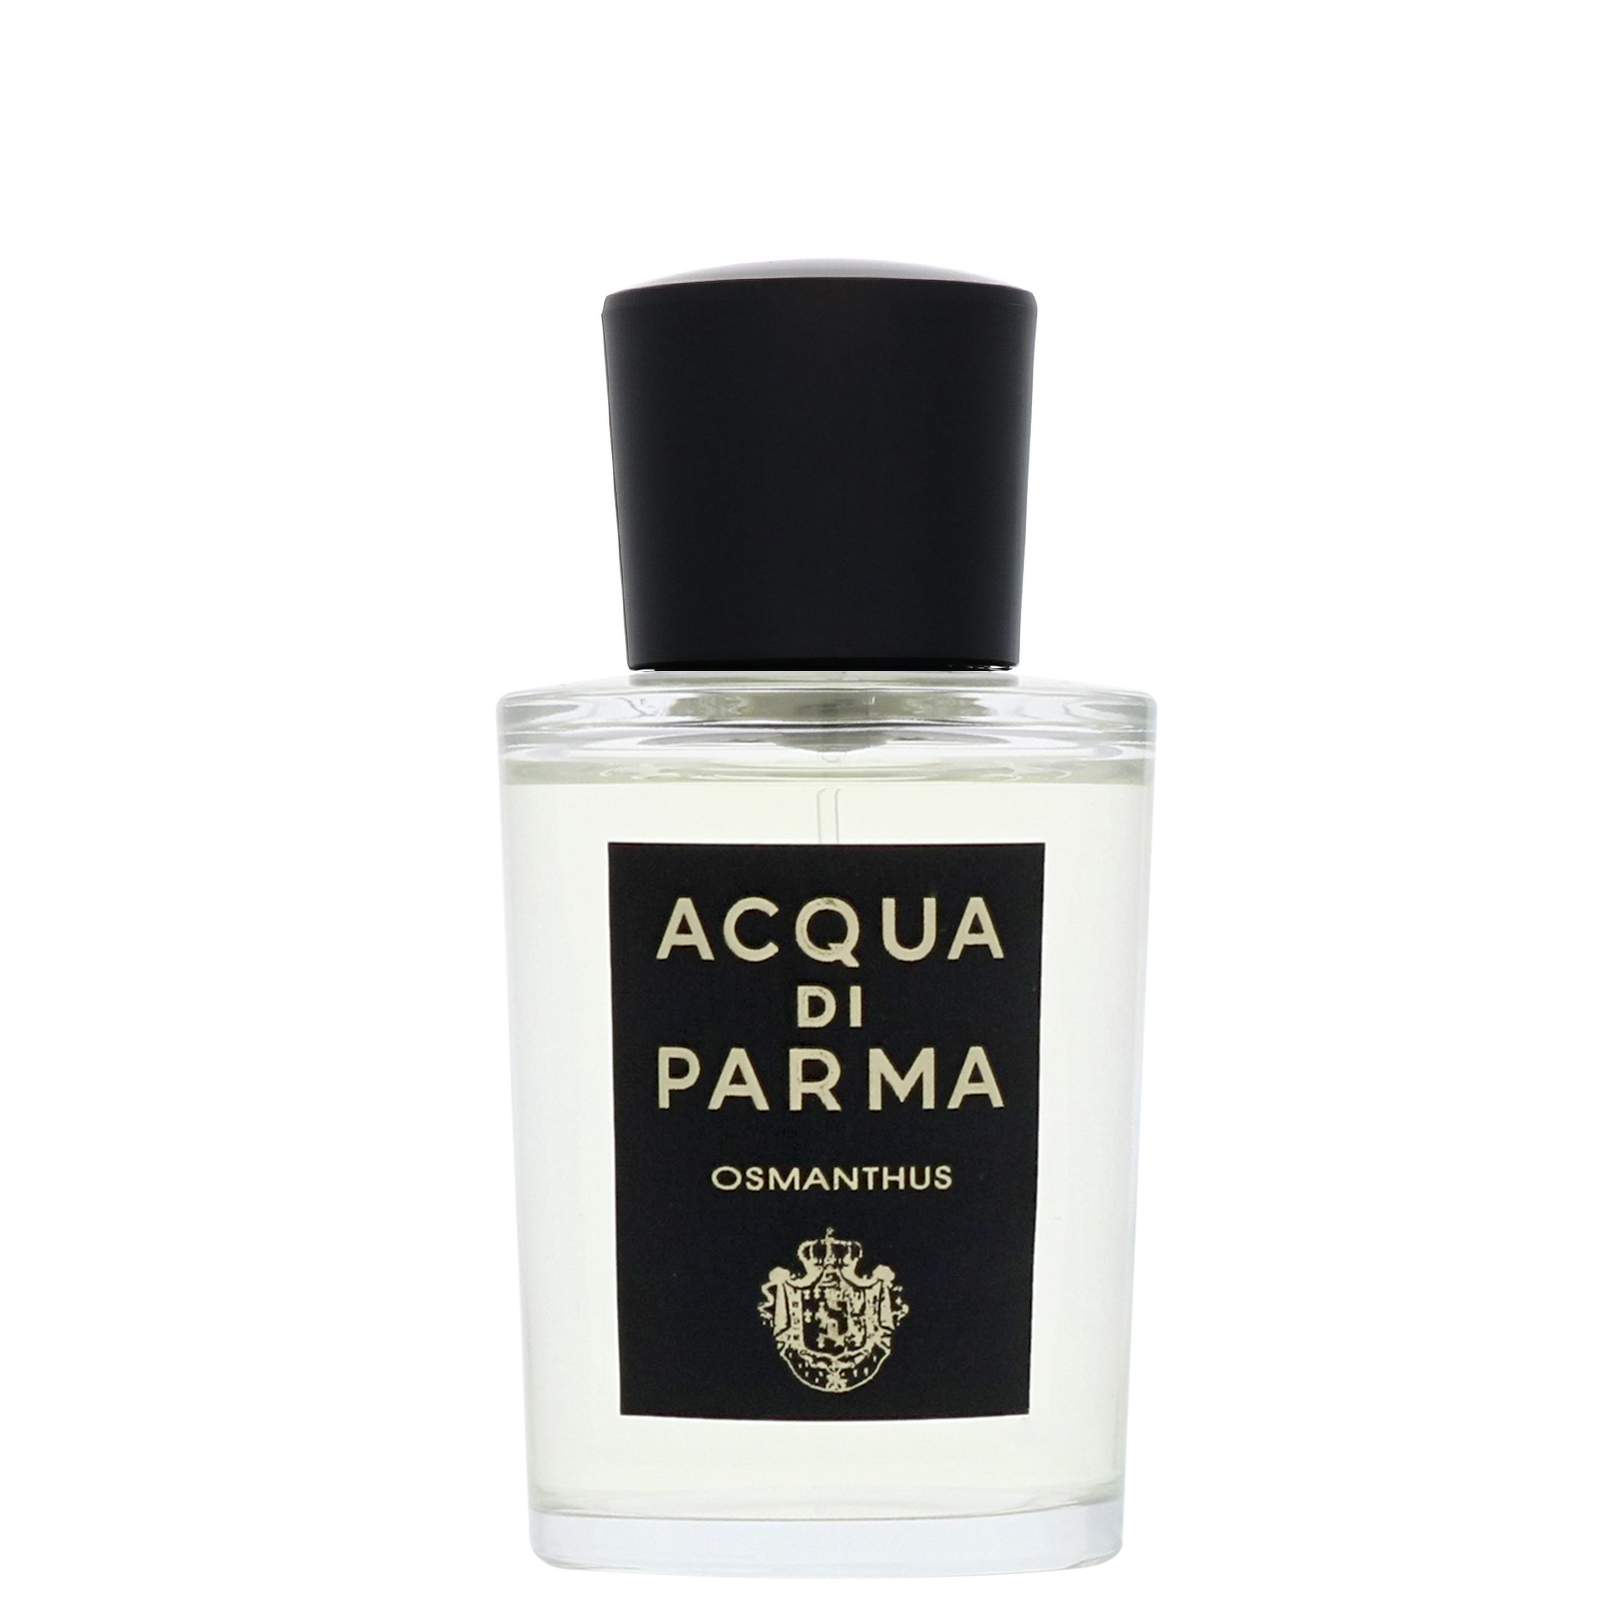 Acqua Di Parma Osmanthus Eau de Parfum Spray 20ml